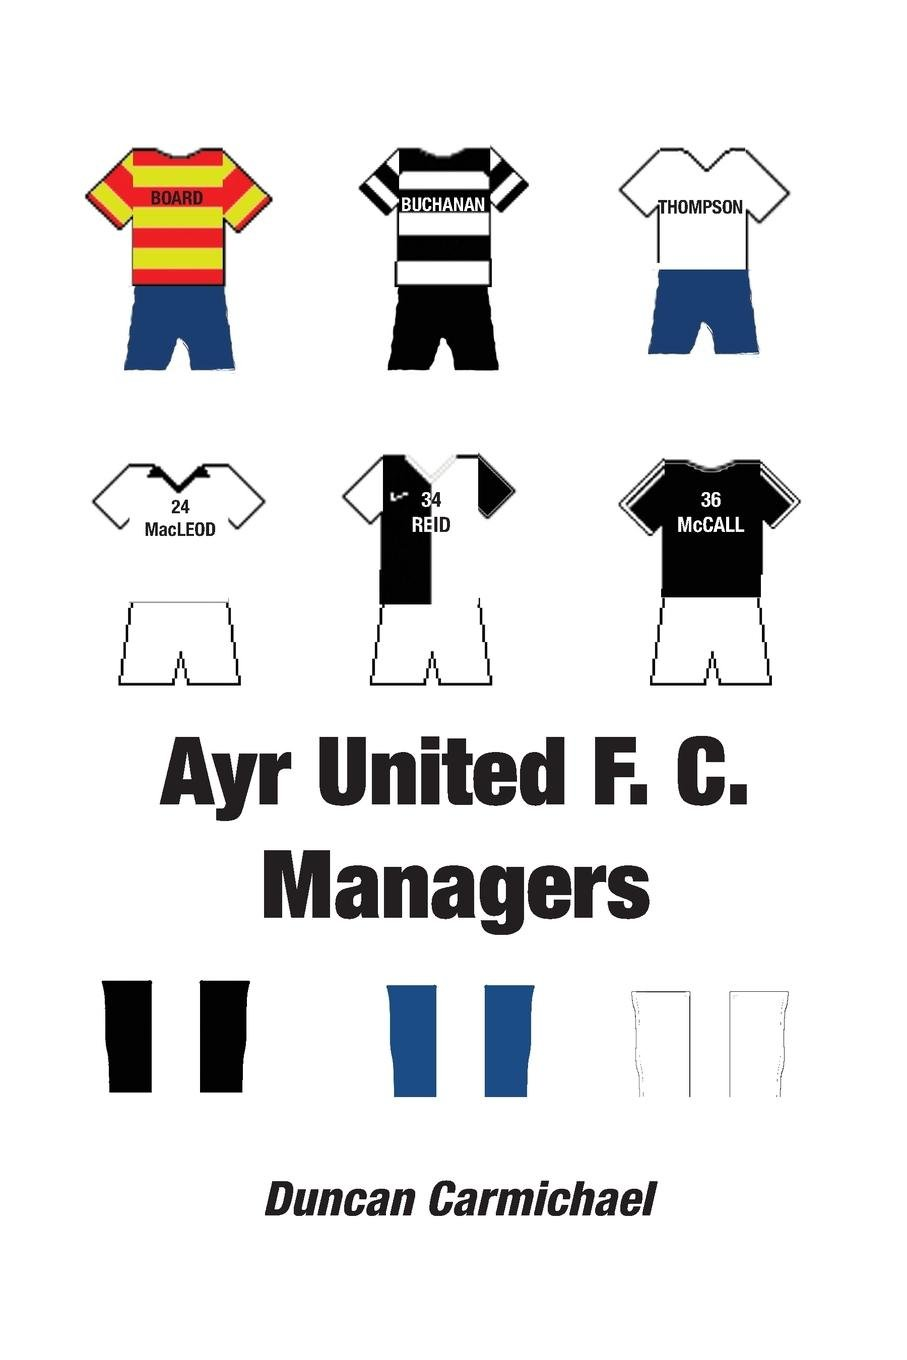 Ayr United F.C. Managers